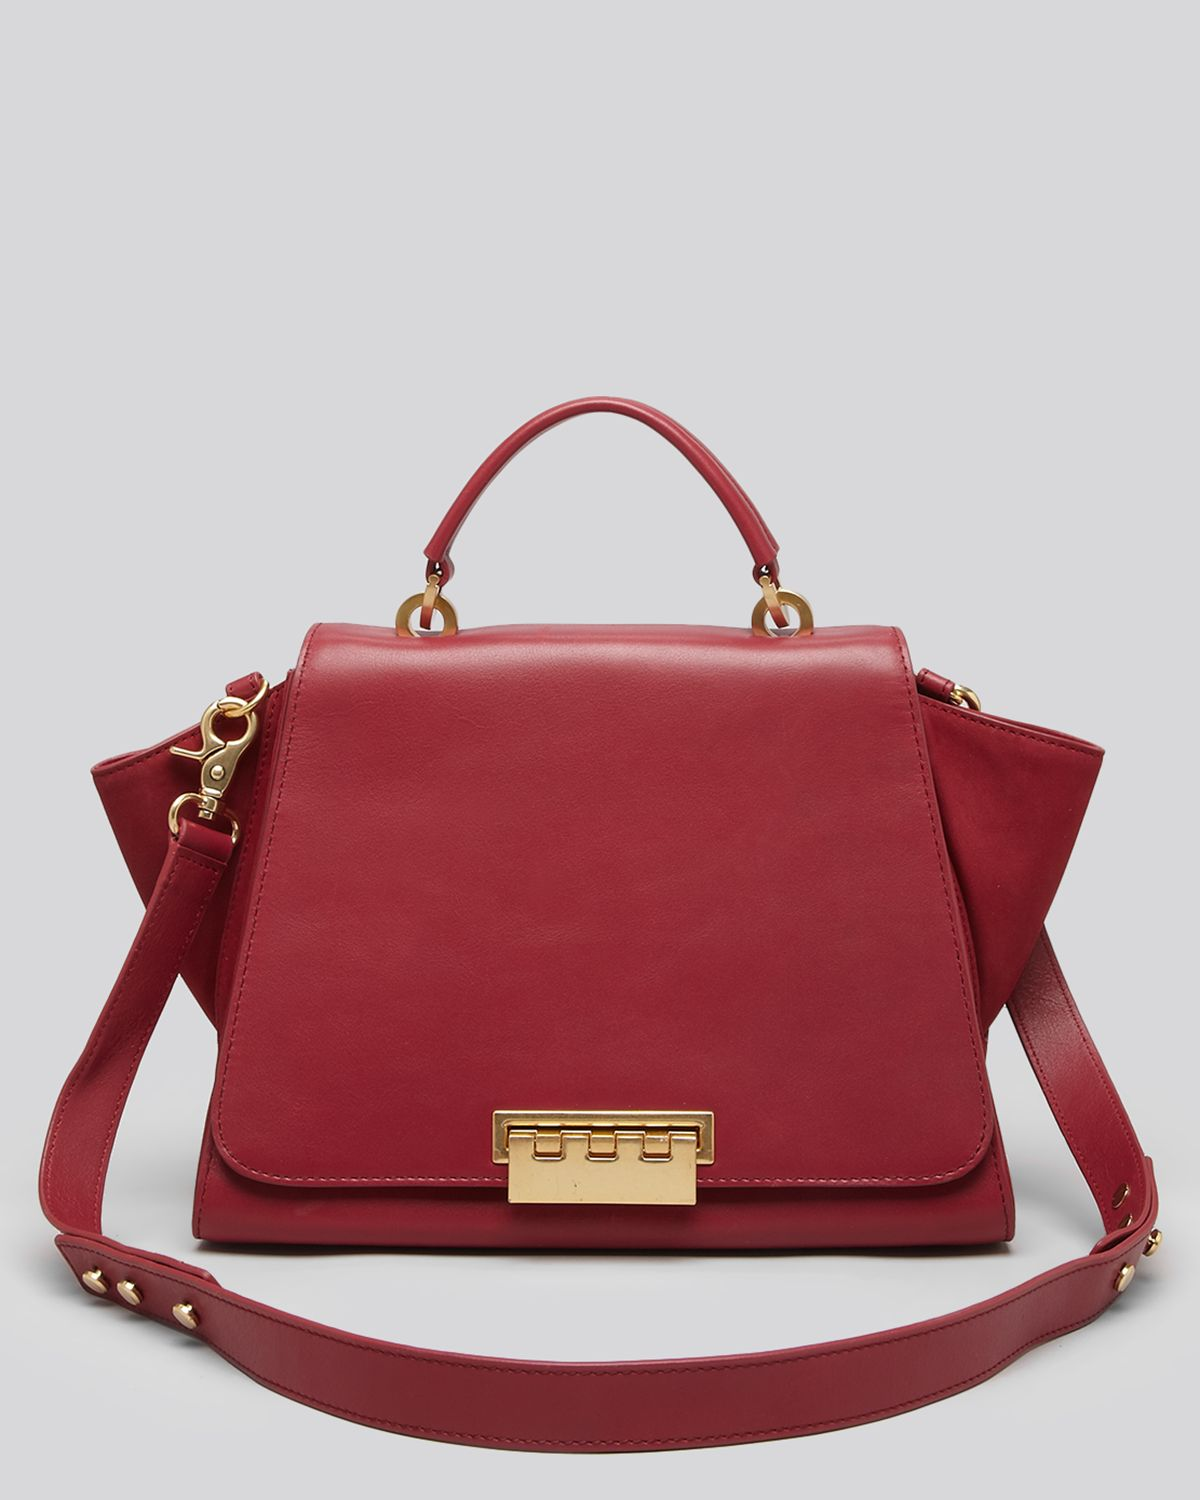 Zac Zac Posen Satchel Eartha Soft Top Handle In Red